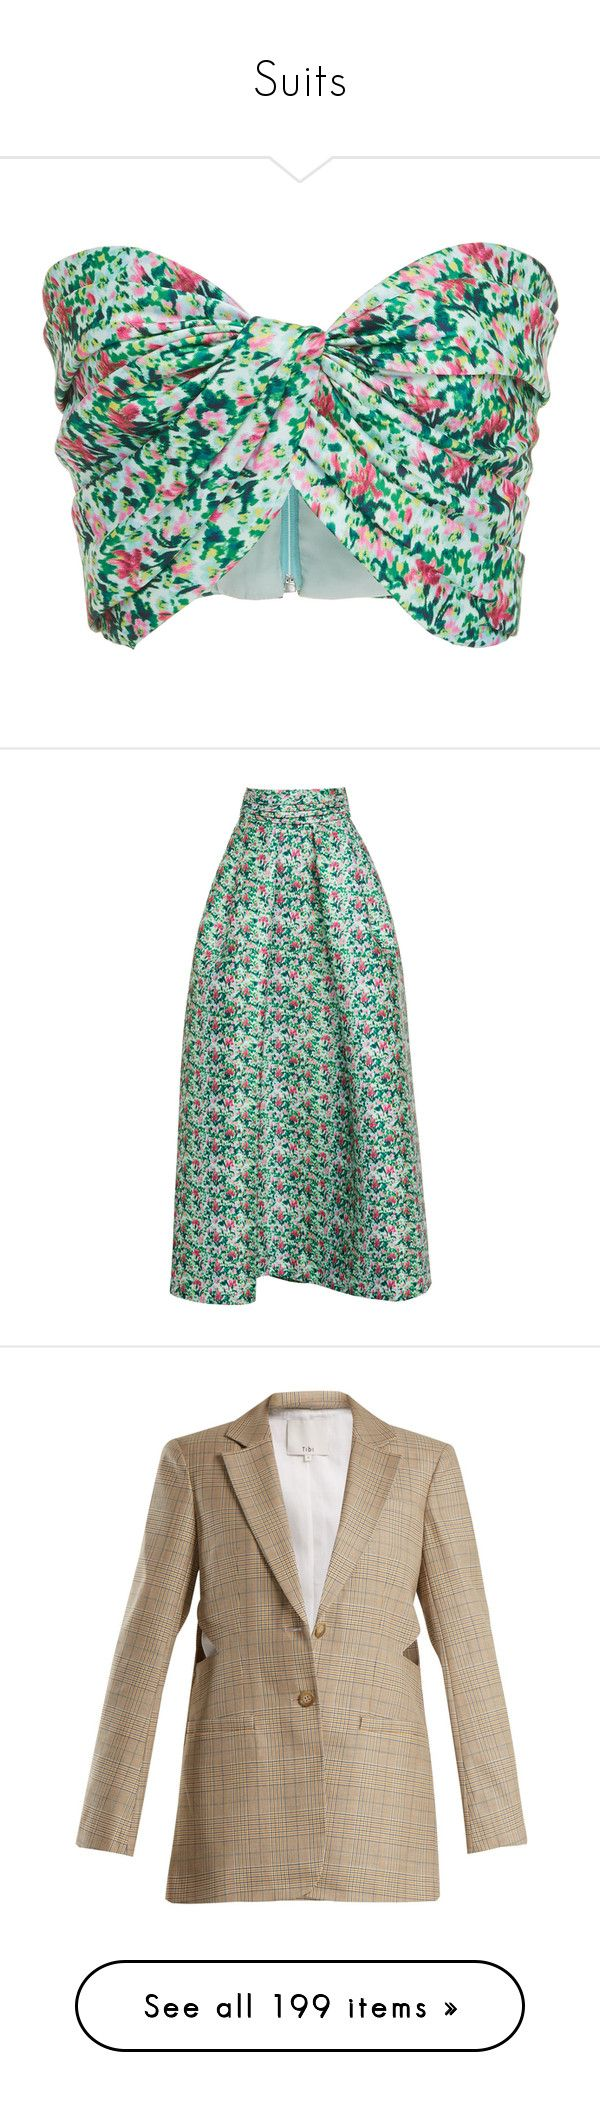 """Suits"" by bliznec ❤ liked on Polyvore featuring tops, sweetheart bandeau top, green bandeau top, vintage crop top, sweetheart neckline tops, sweetheart neck top, skirts, green a line skirt, a-line maxi skirts and high waisted a line skirt"